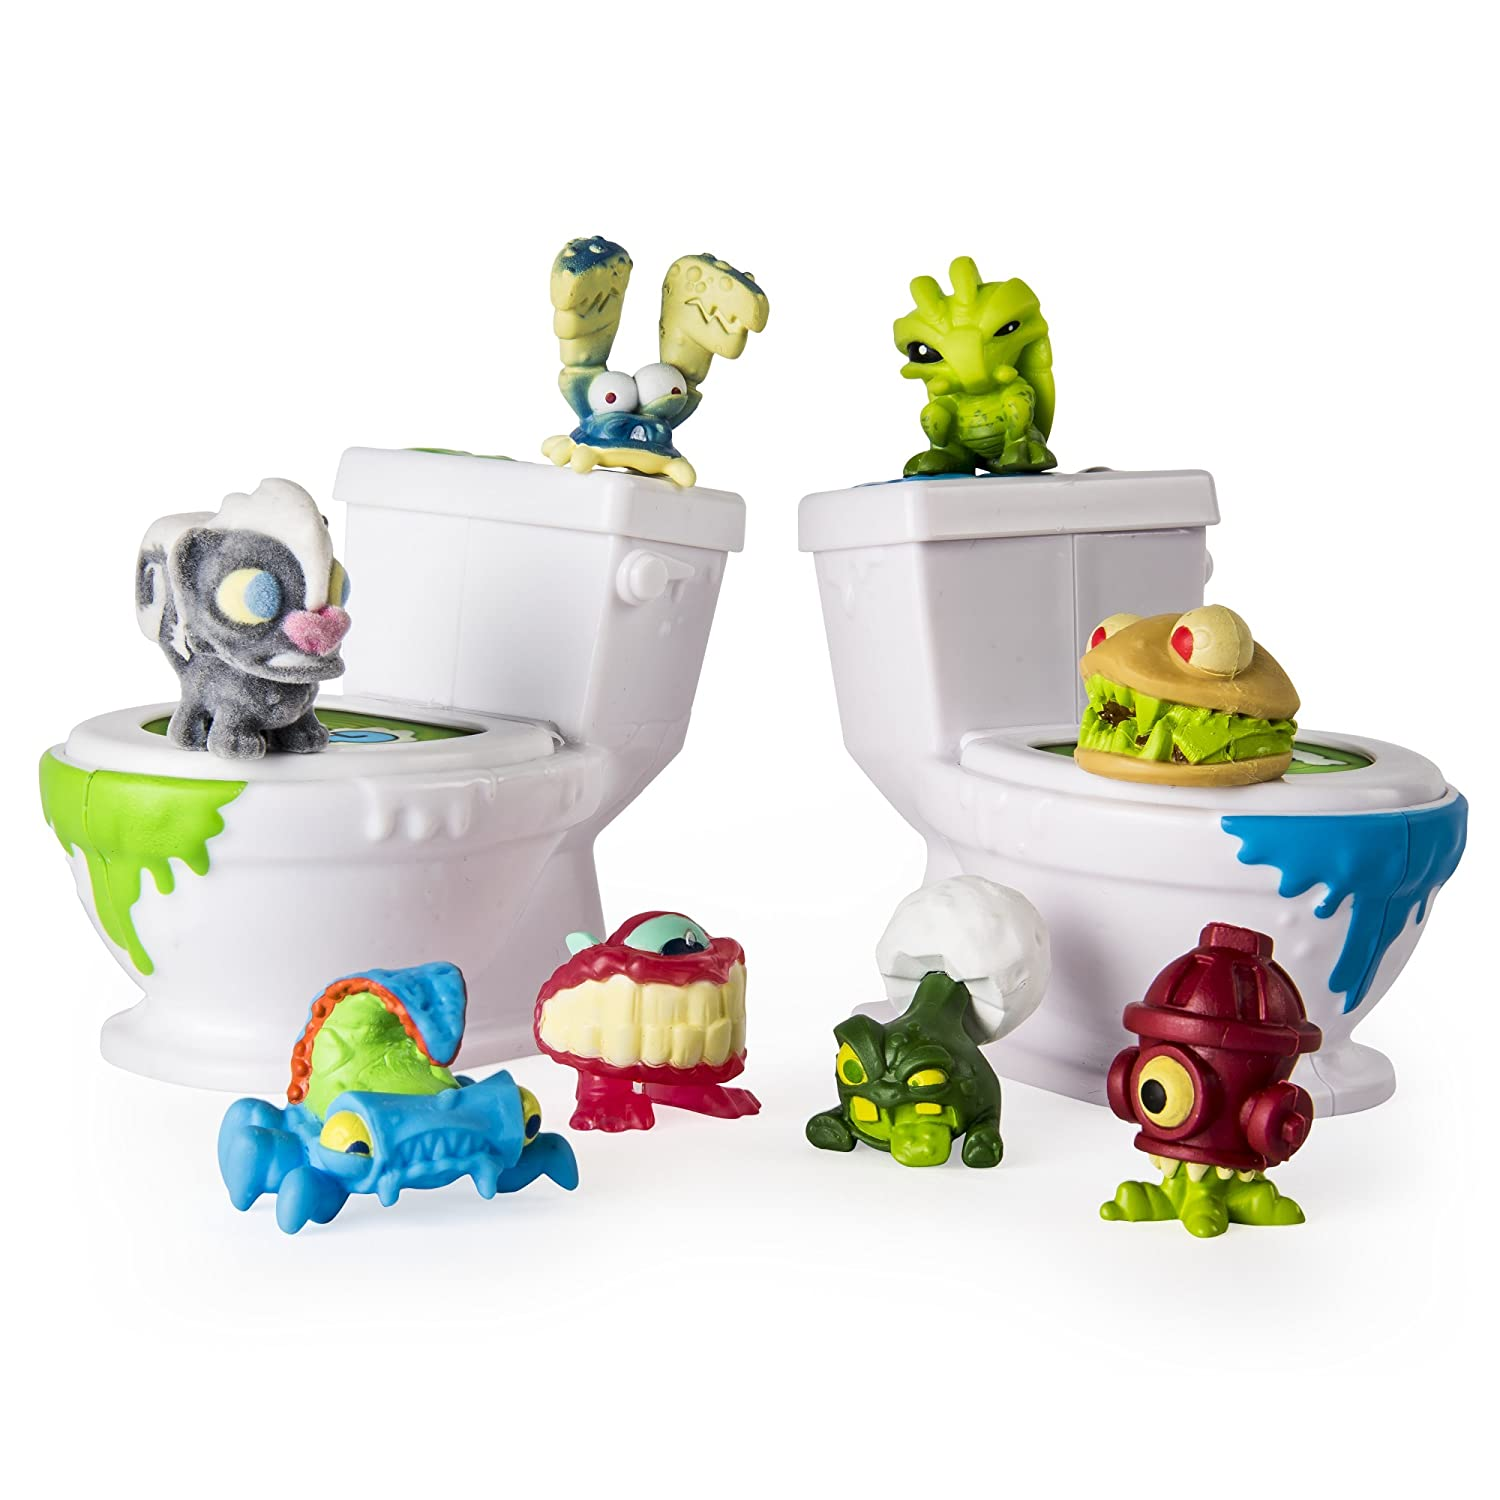 Flush Force 6037316 Bizarre Bathroom, Multicolour Spin Master